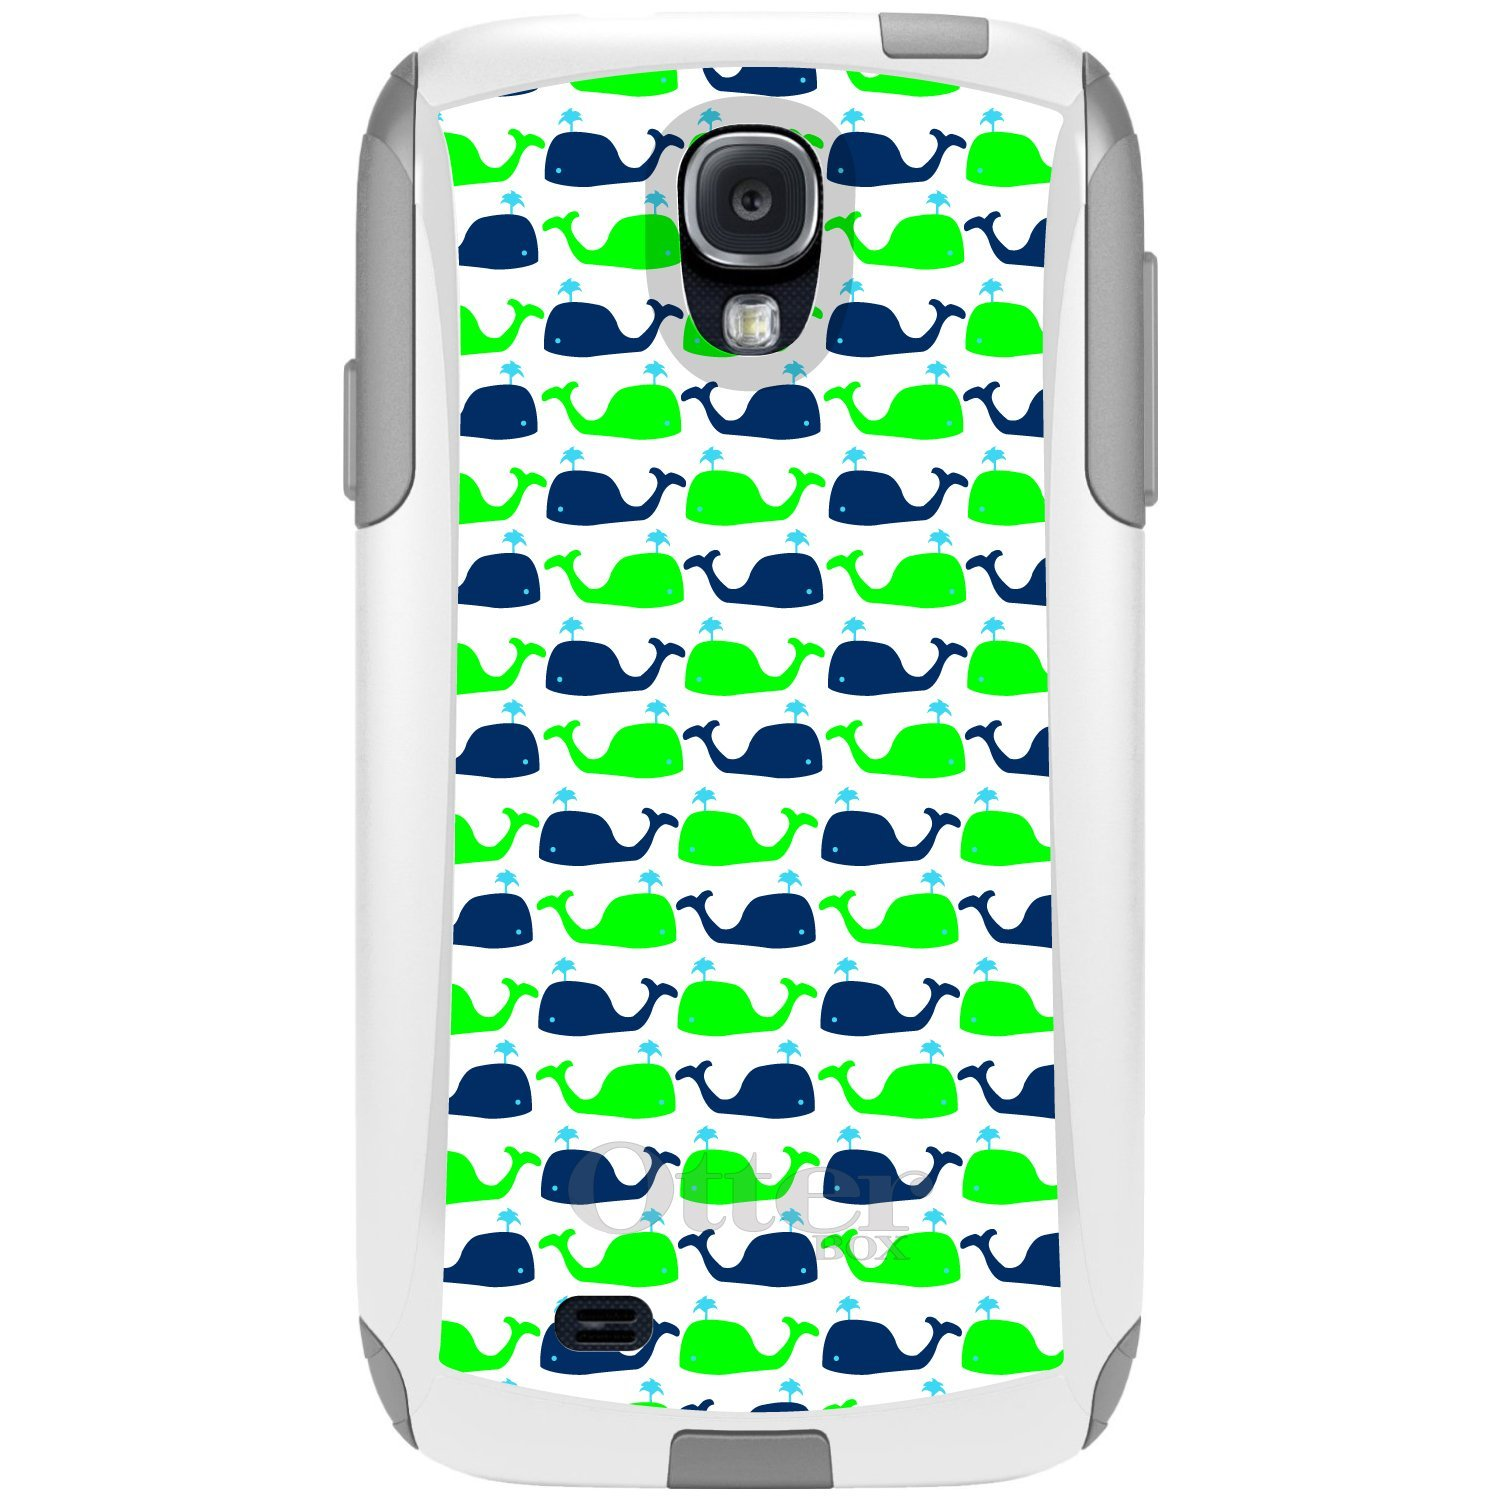 Otterbox Case 34 Customer Reviews And 13090 Listings